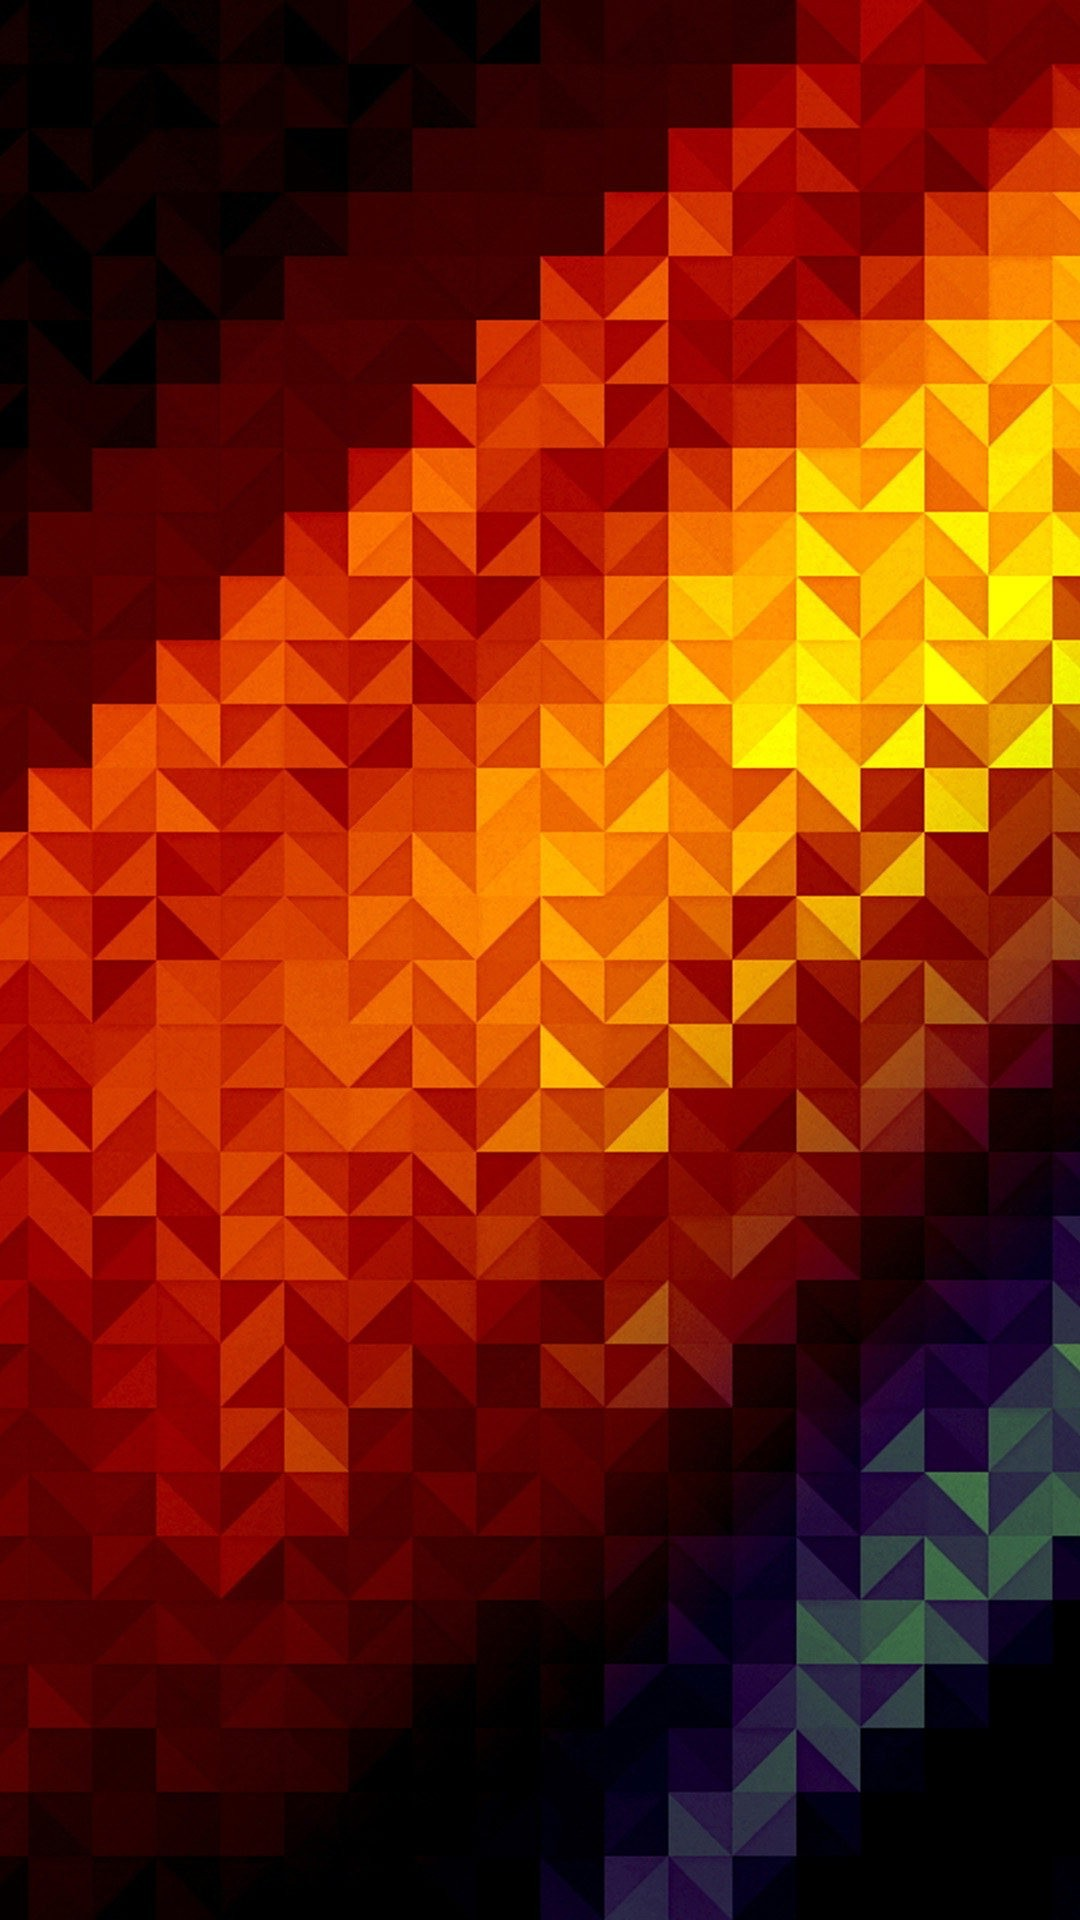 Abstract Iphone Wallpapers 7